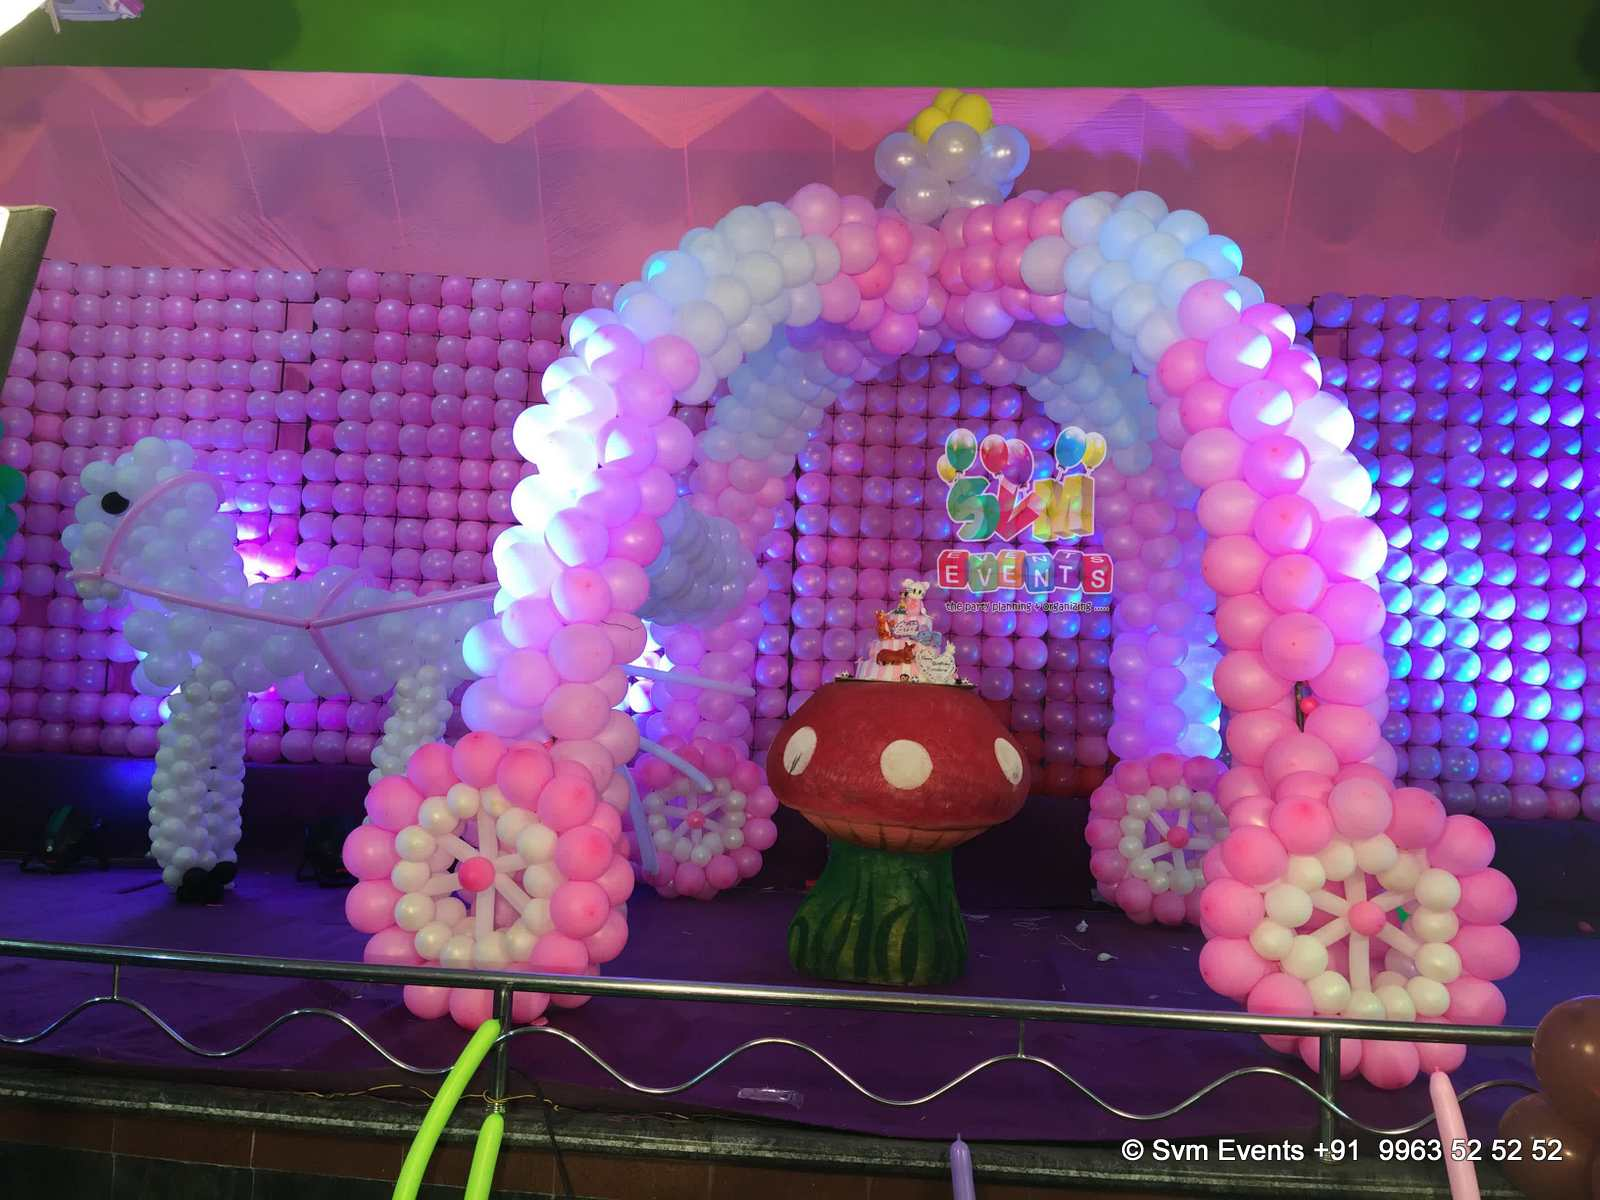 Svm events chariot theme for kids 1st birthday party and for Balloon decoration ideas for 1st birthday